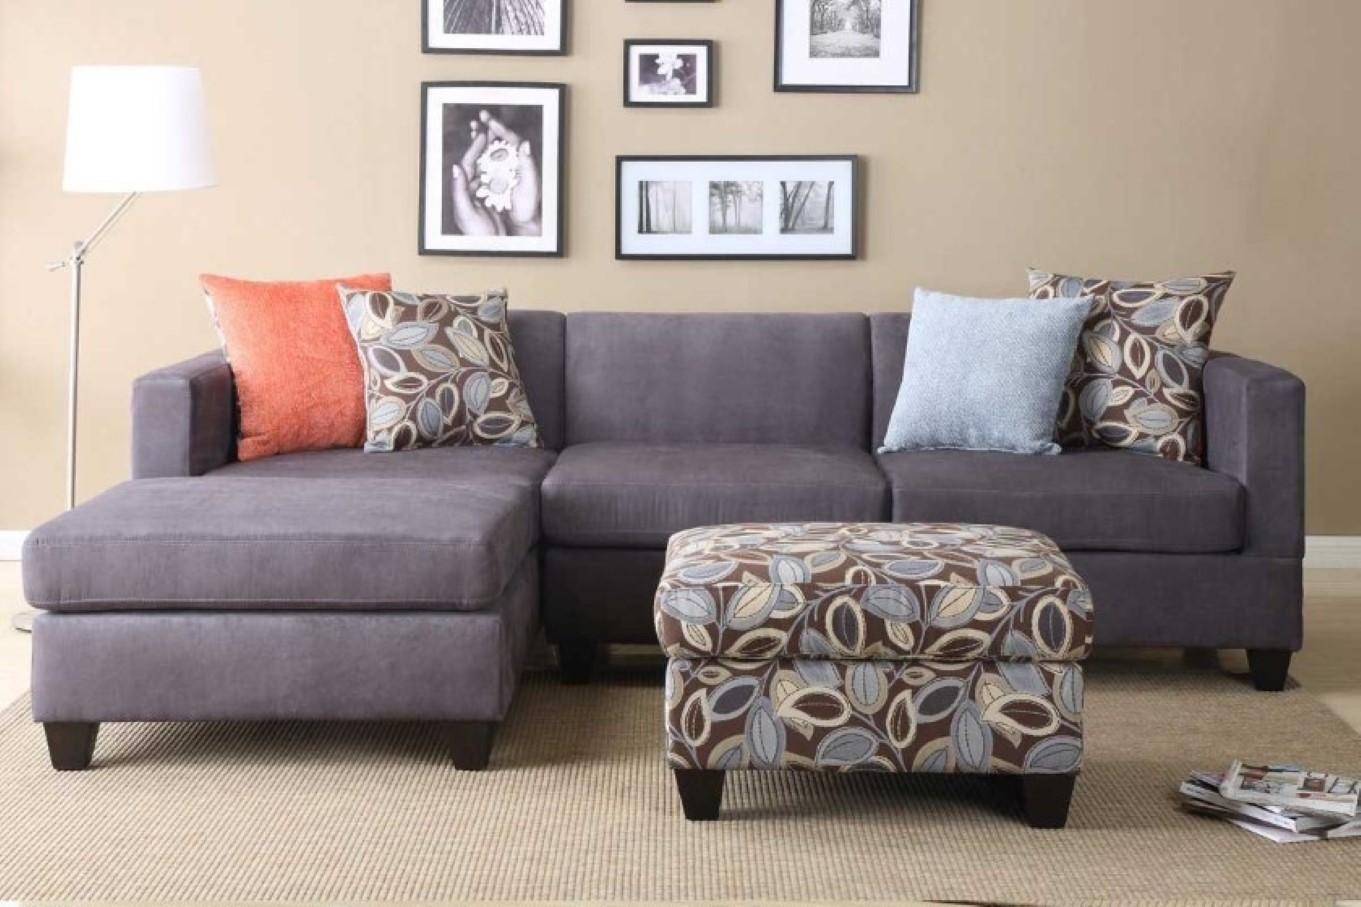 3 Piece Sectional Sleeper Sofa - Ansugallery with regard to 3 Piece Sectional Sleeper Sofa